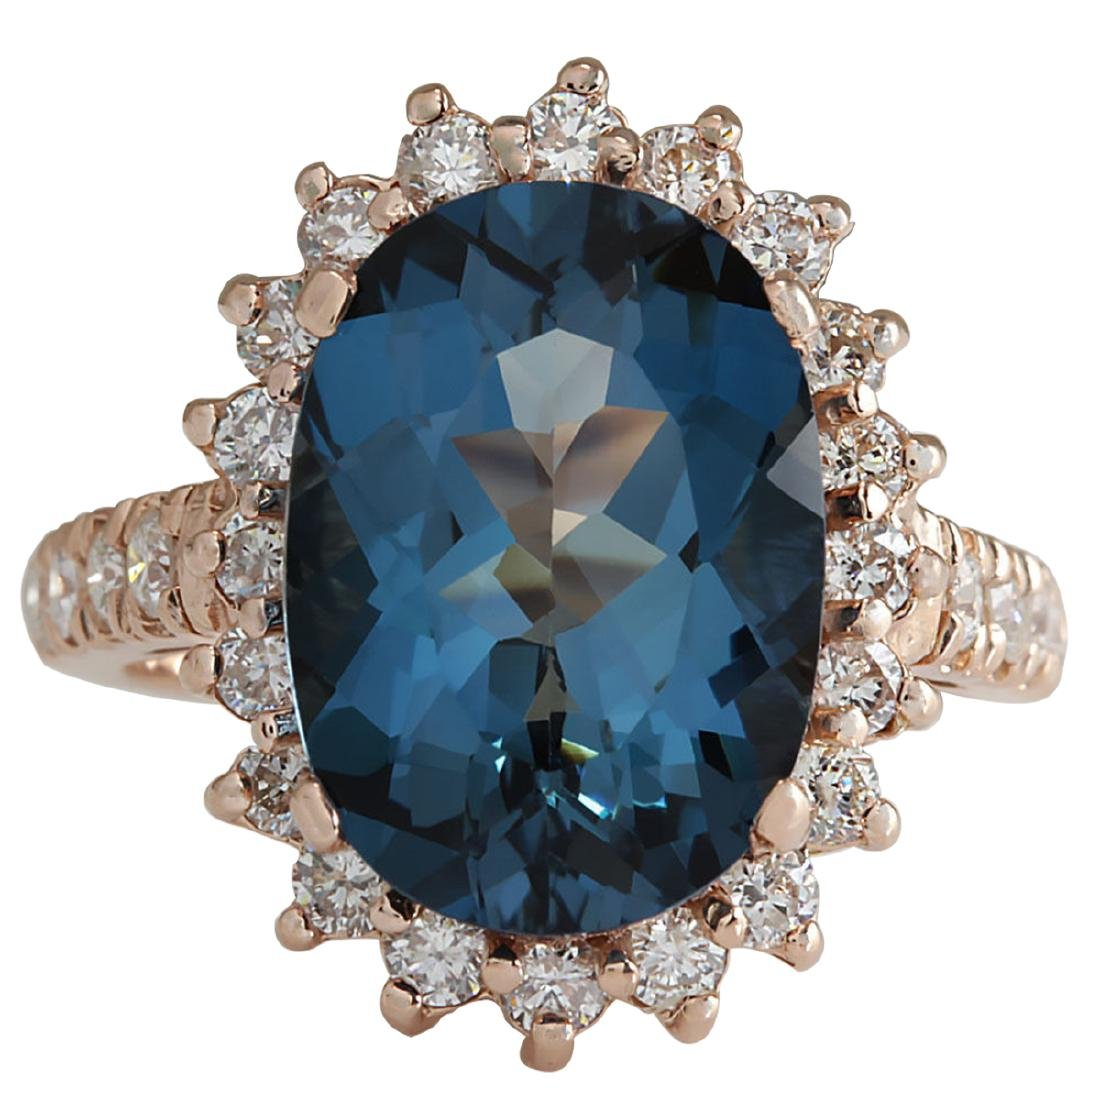 8.34CTW Natural London Blue Topaz And Diamond Ring In